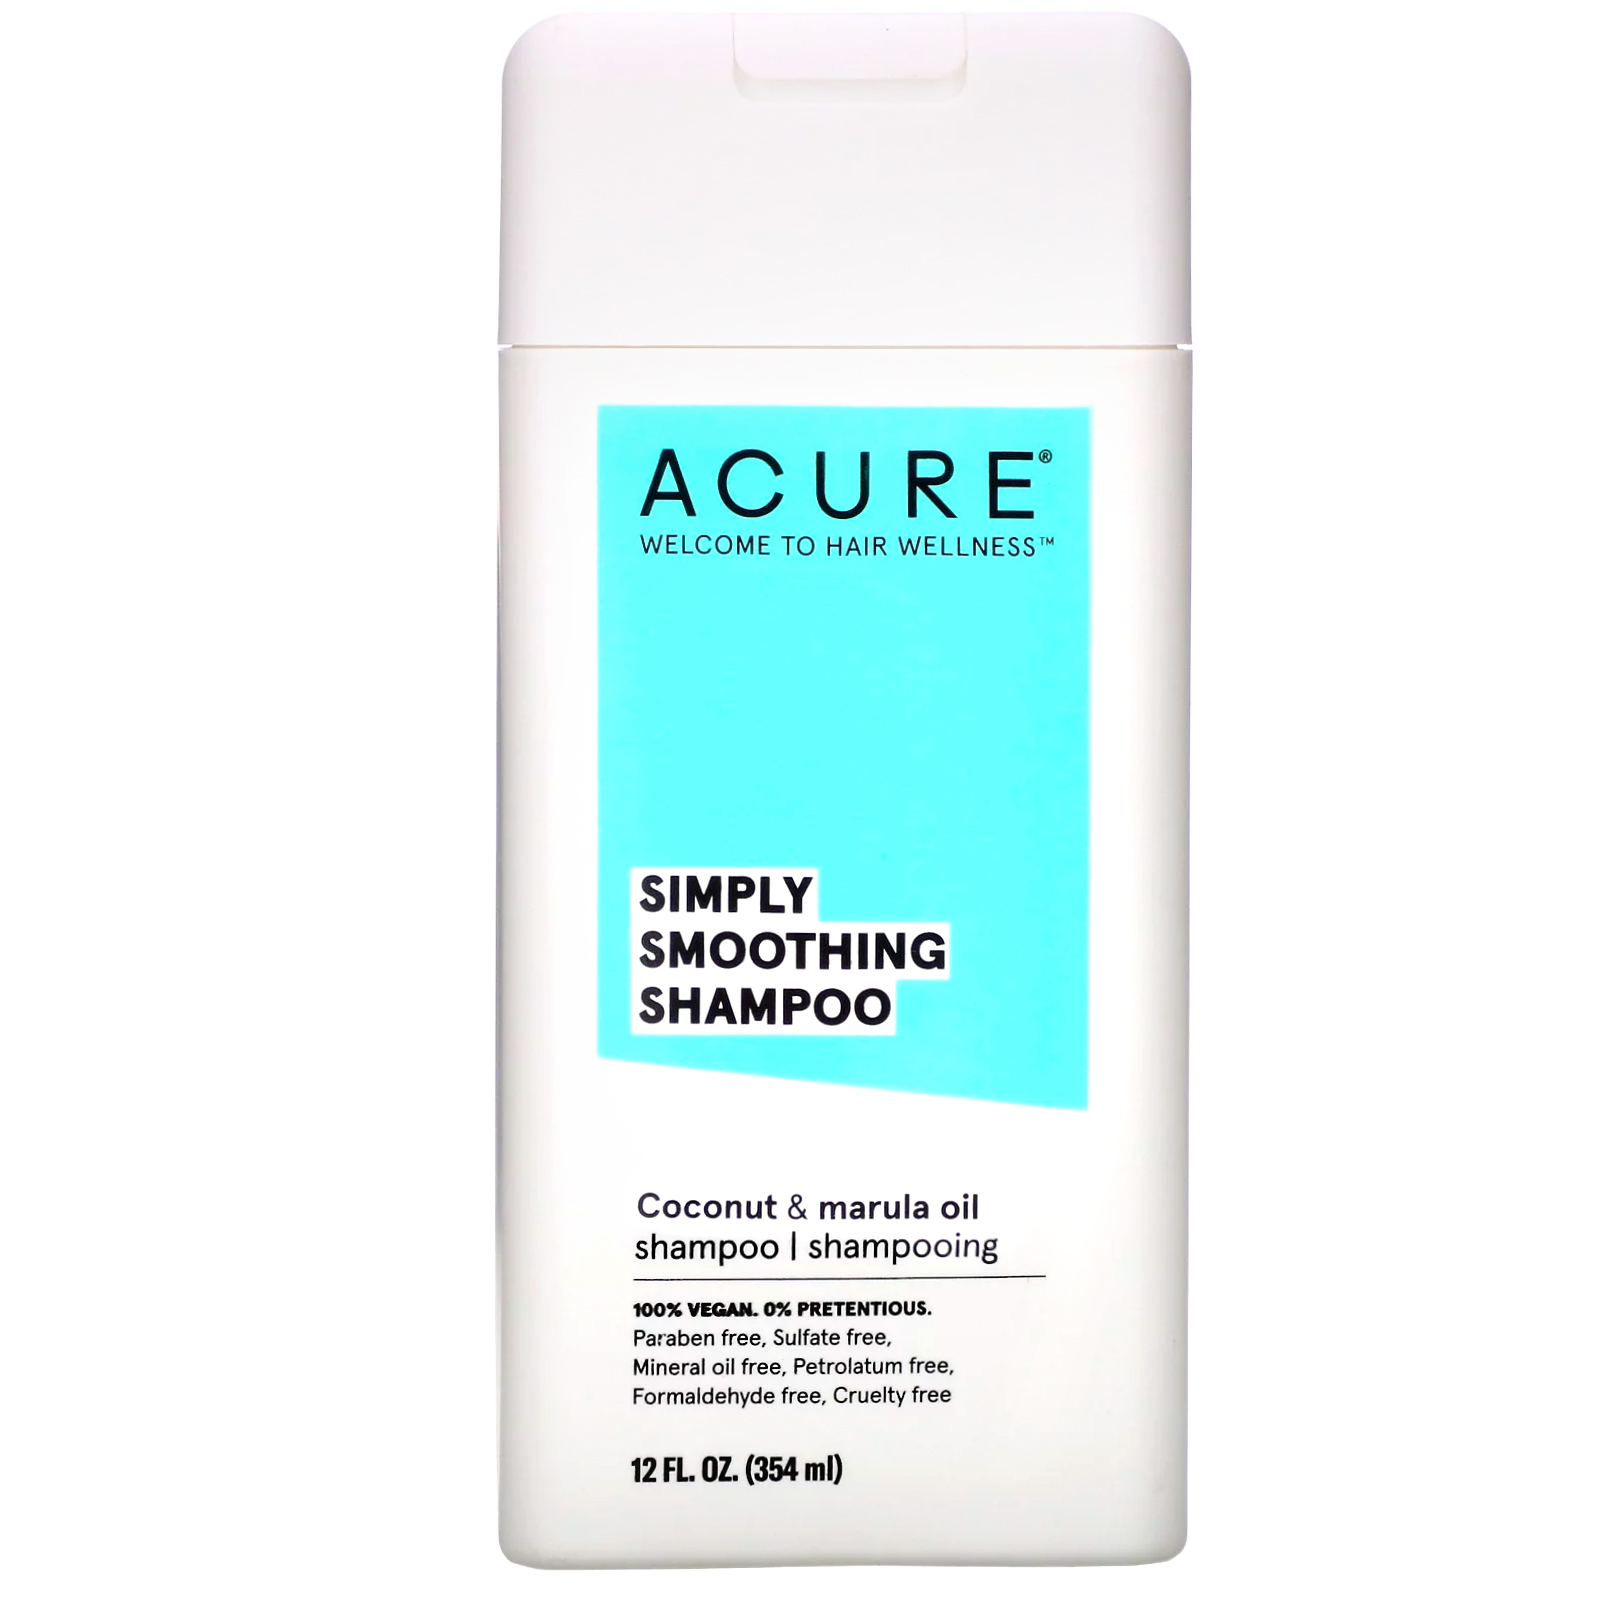 Acure, Simply Smoothing Shampoo, Coconut & Marula Oil, 12